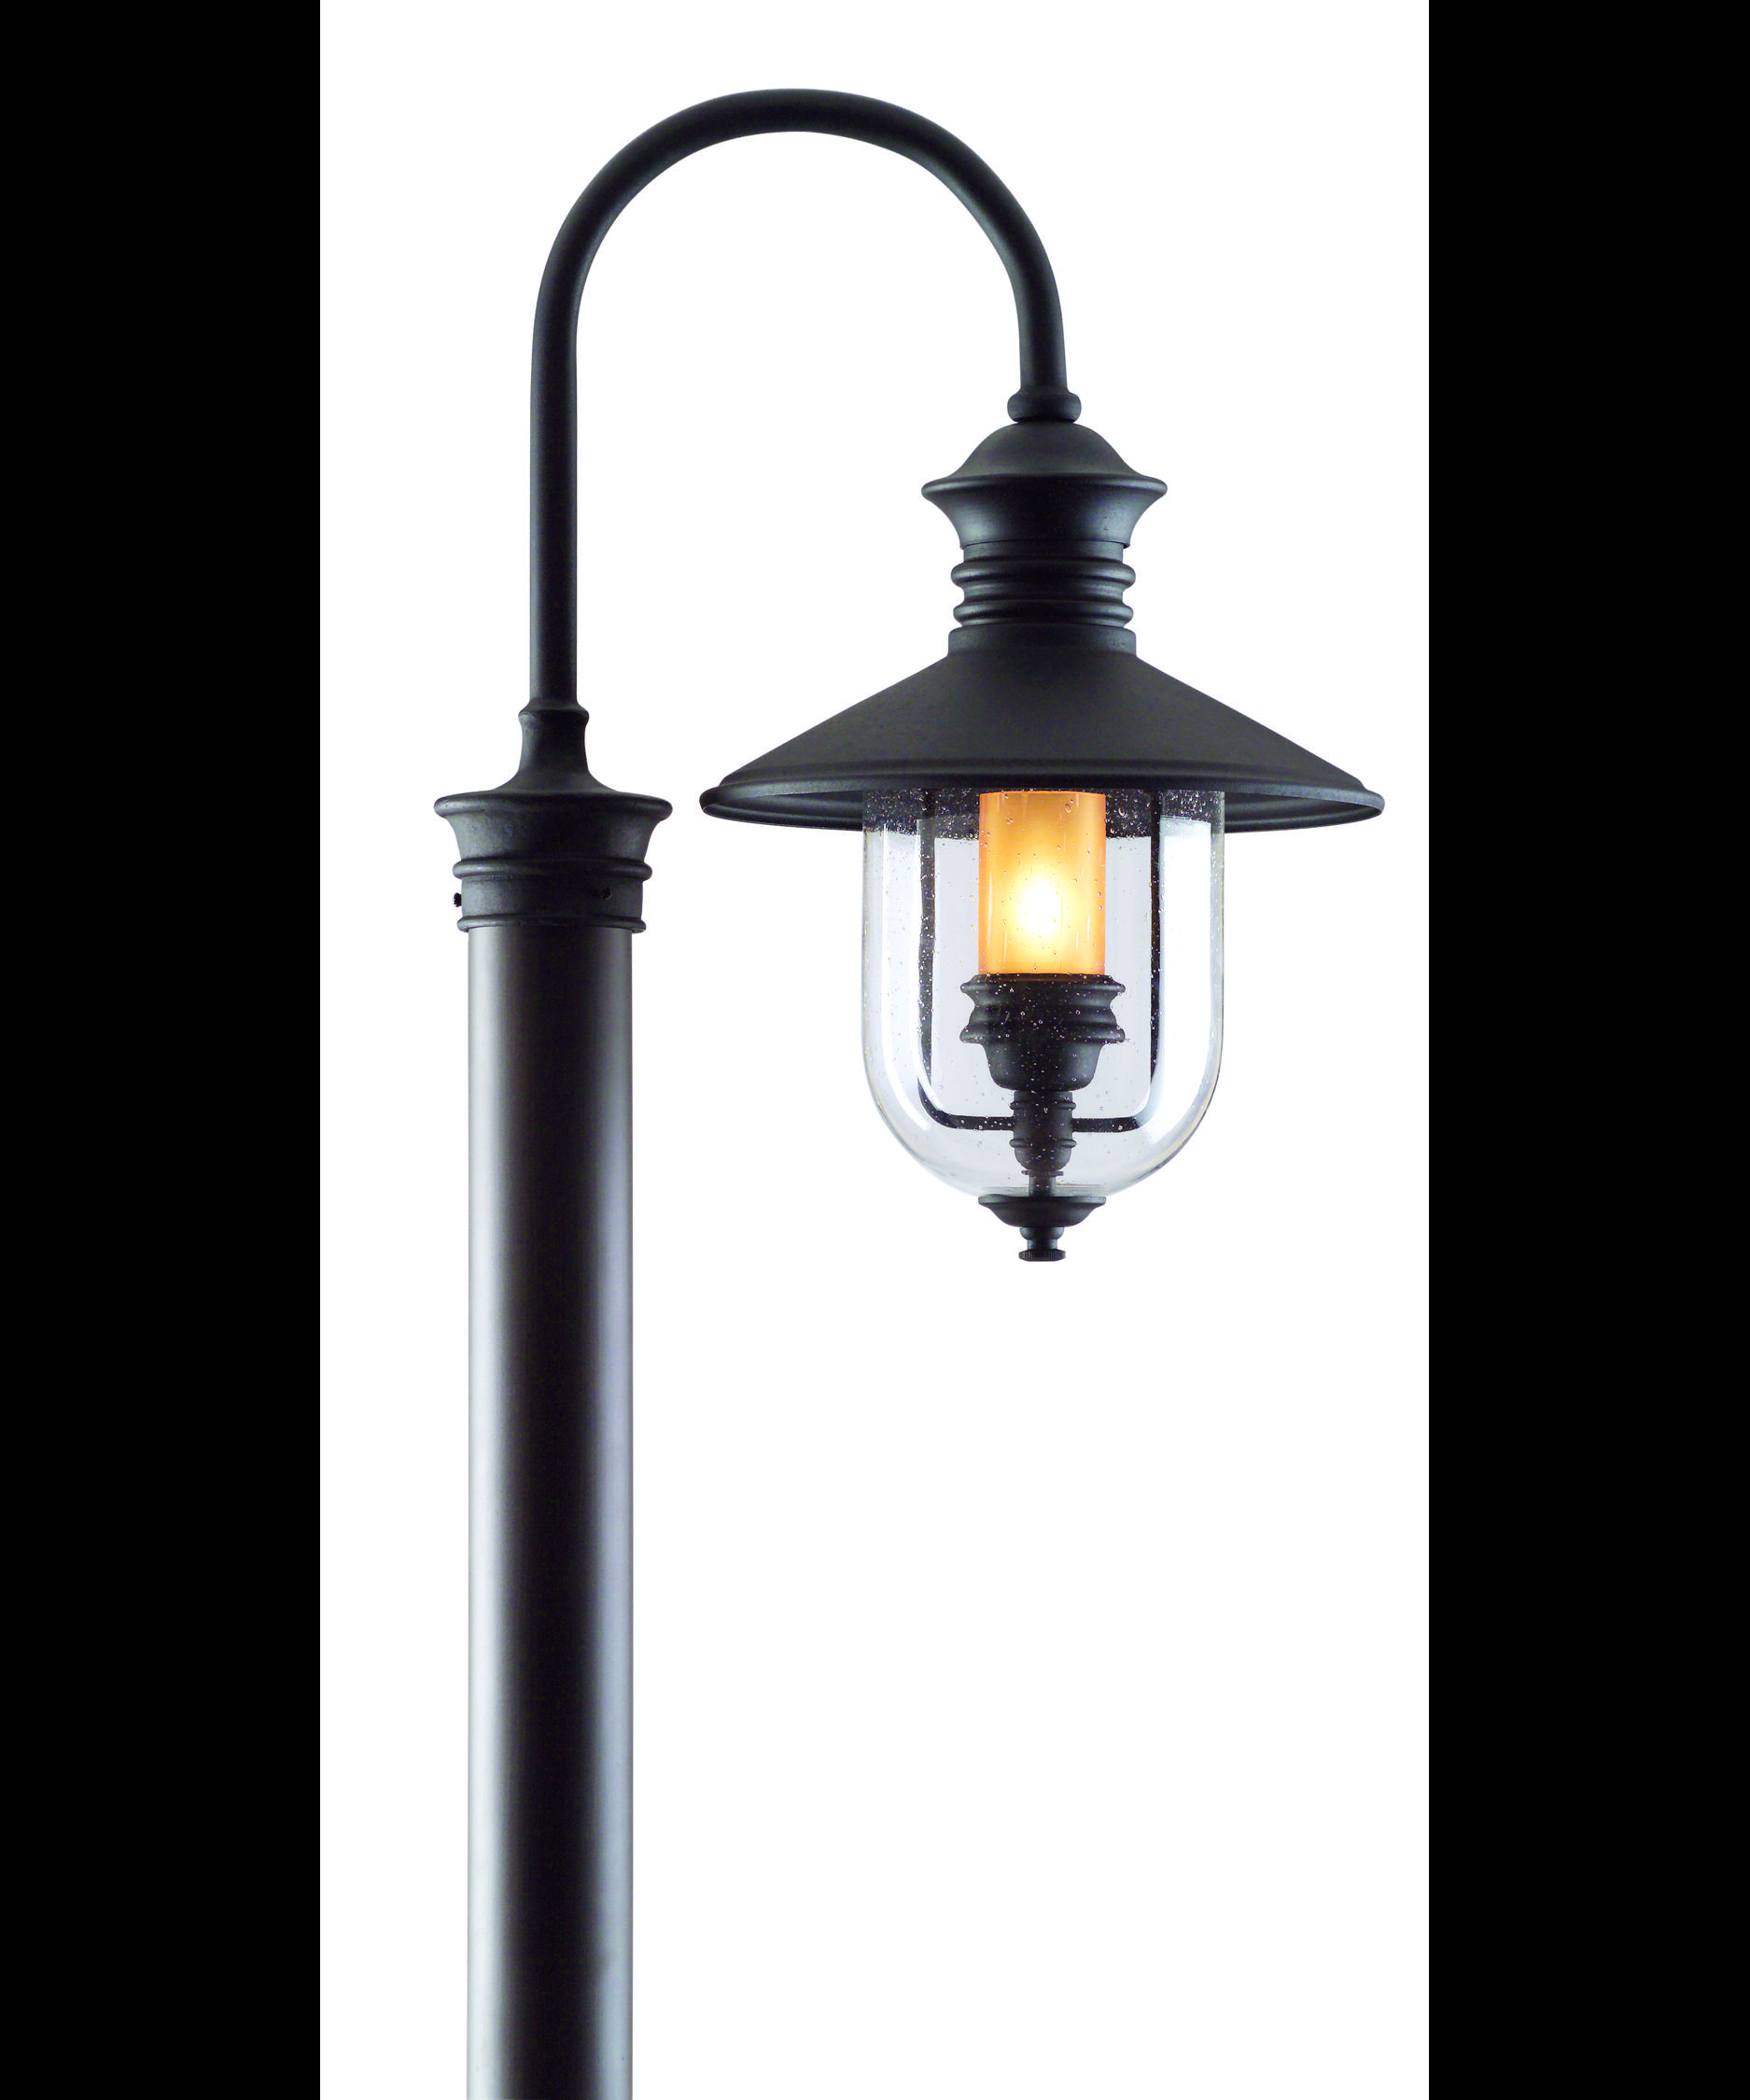 Wooden Light Post Designs Troy Lighting P9364 Old Town 1 Light Outdoor Post Lamp